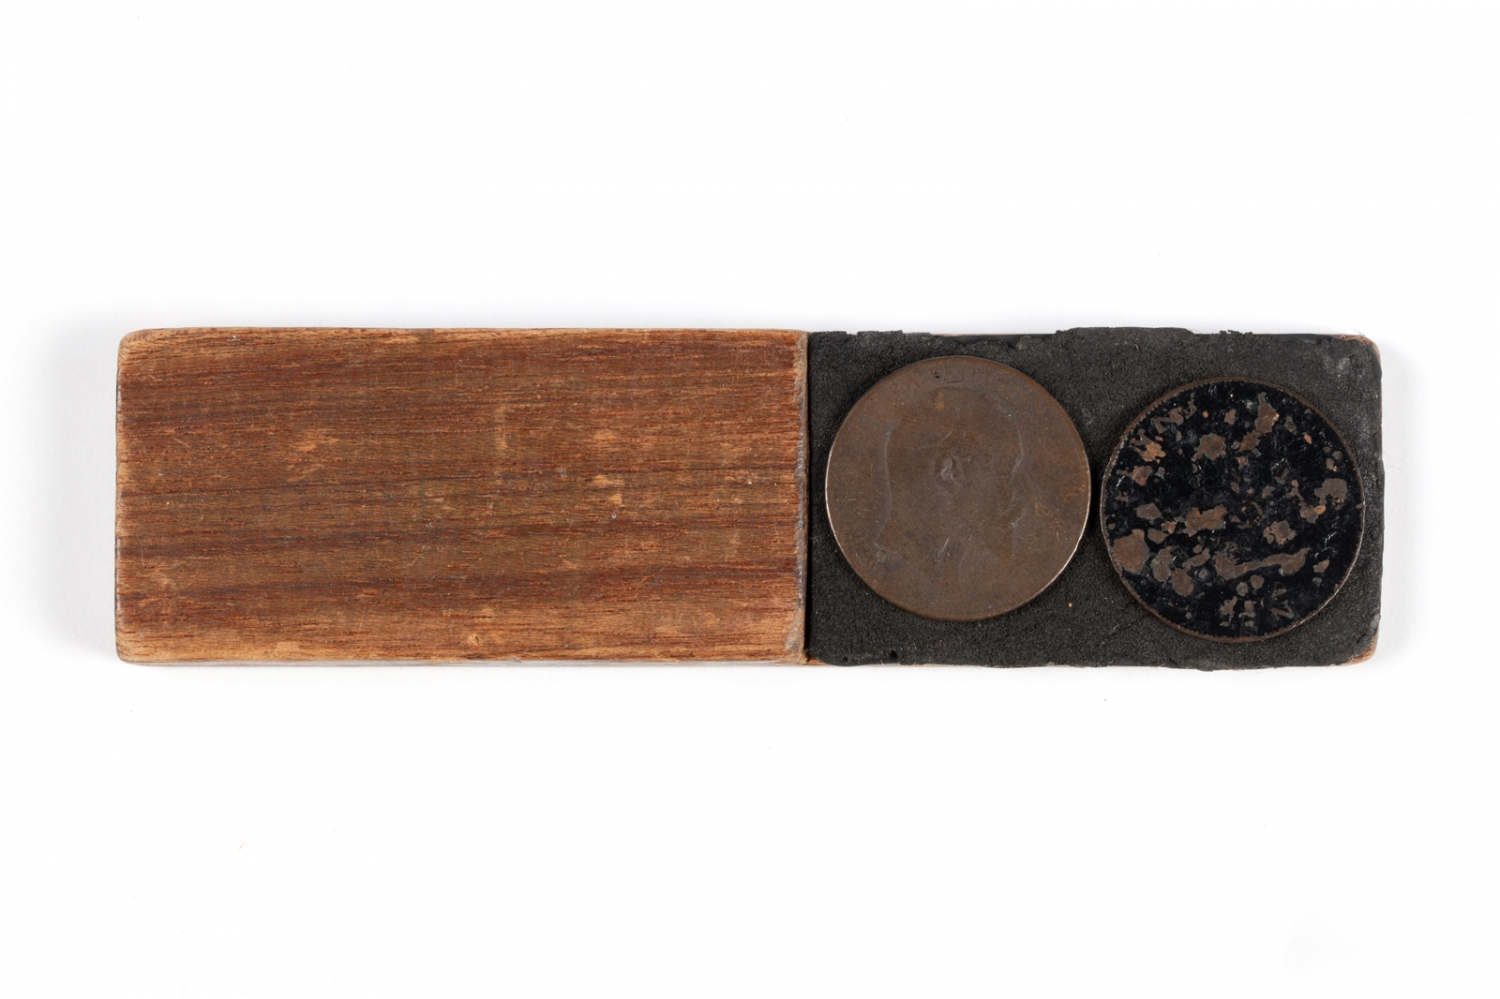 Two up game pieces consisting of a wooden 'kip' and two Australian pennies, date unknown